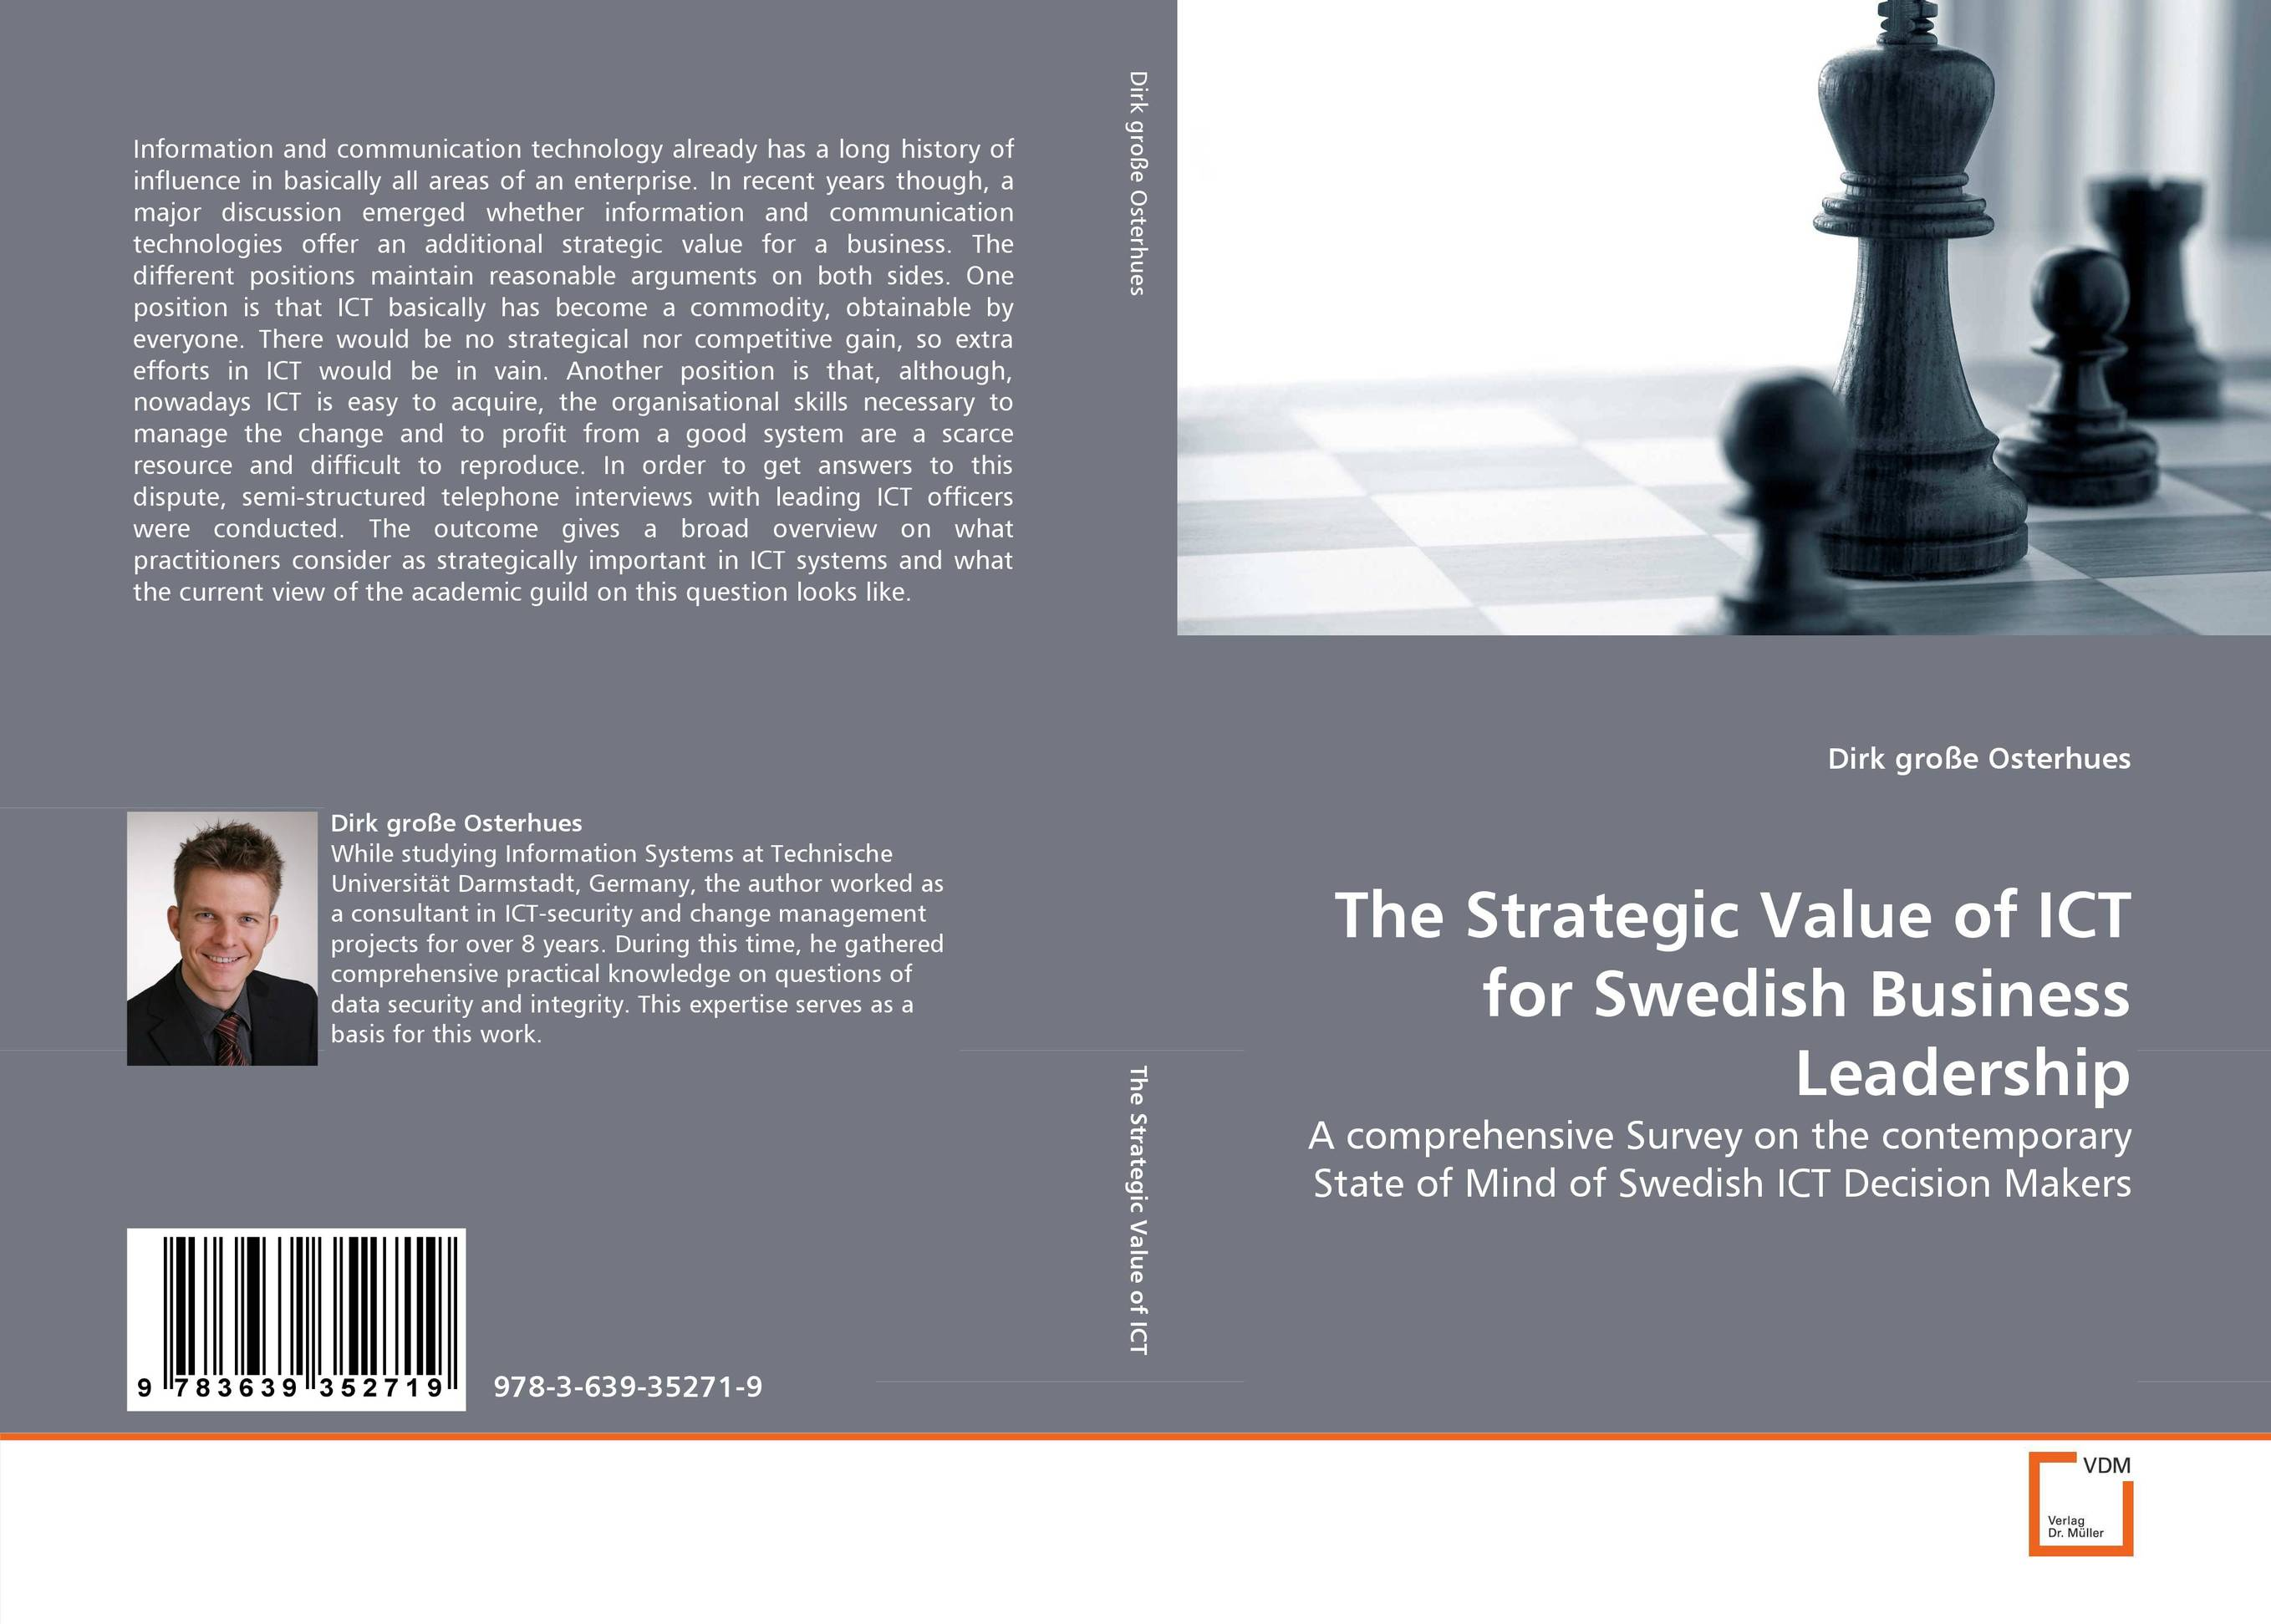 The Strategic Value of ICT for Swedish Business Leadership the strategic value of ict for swedish business leadership